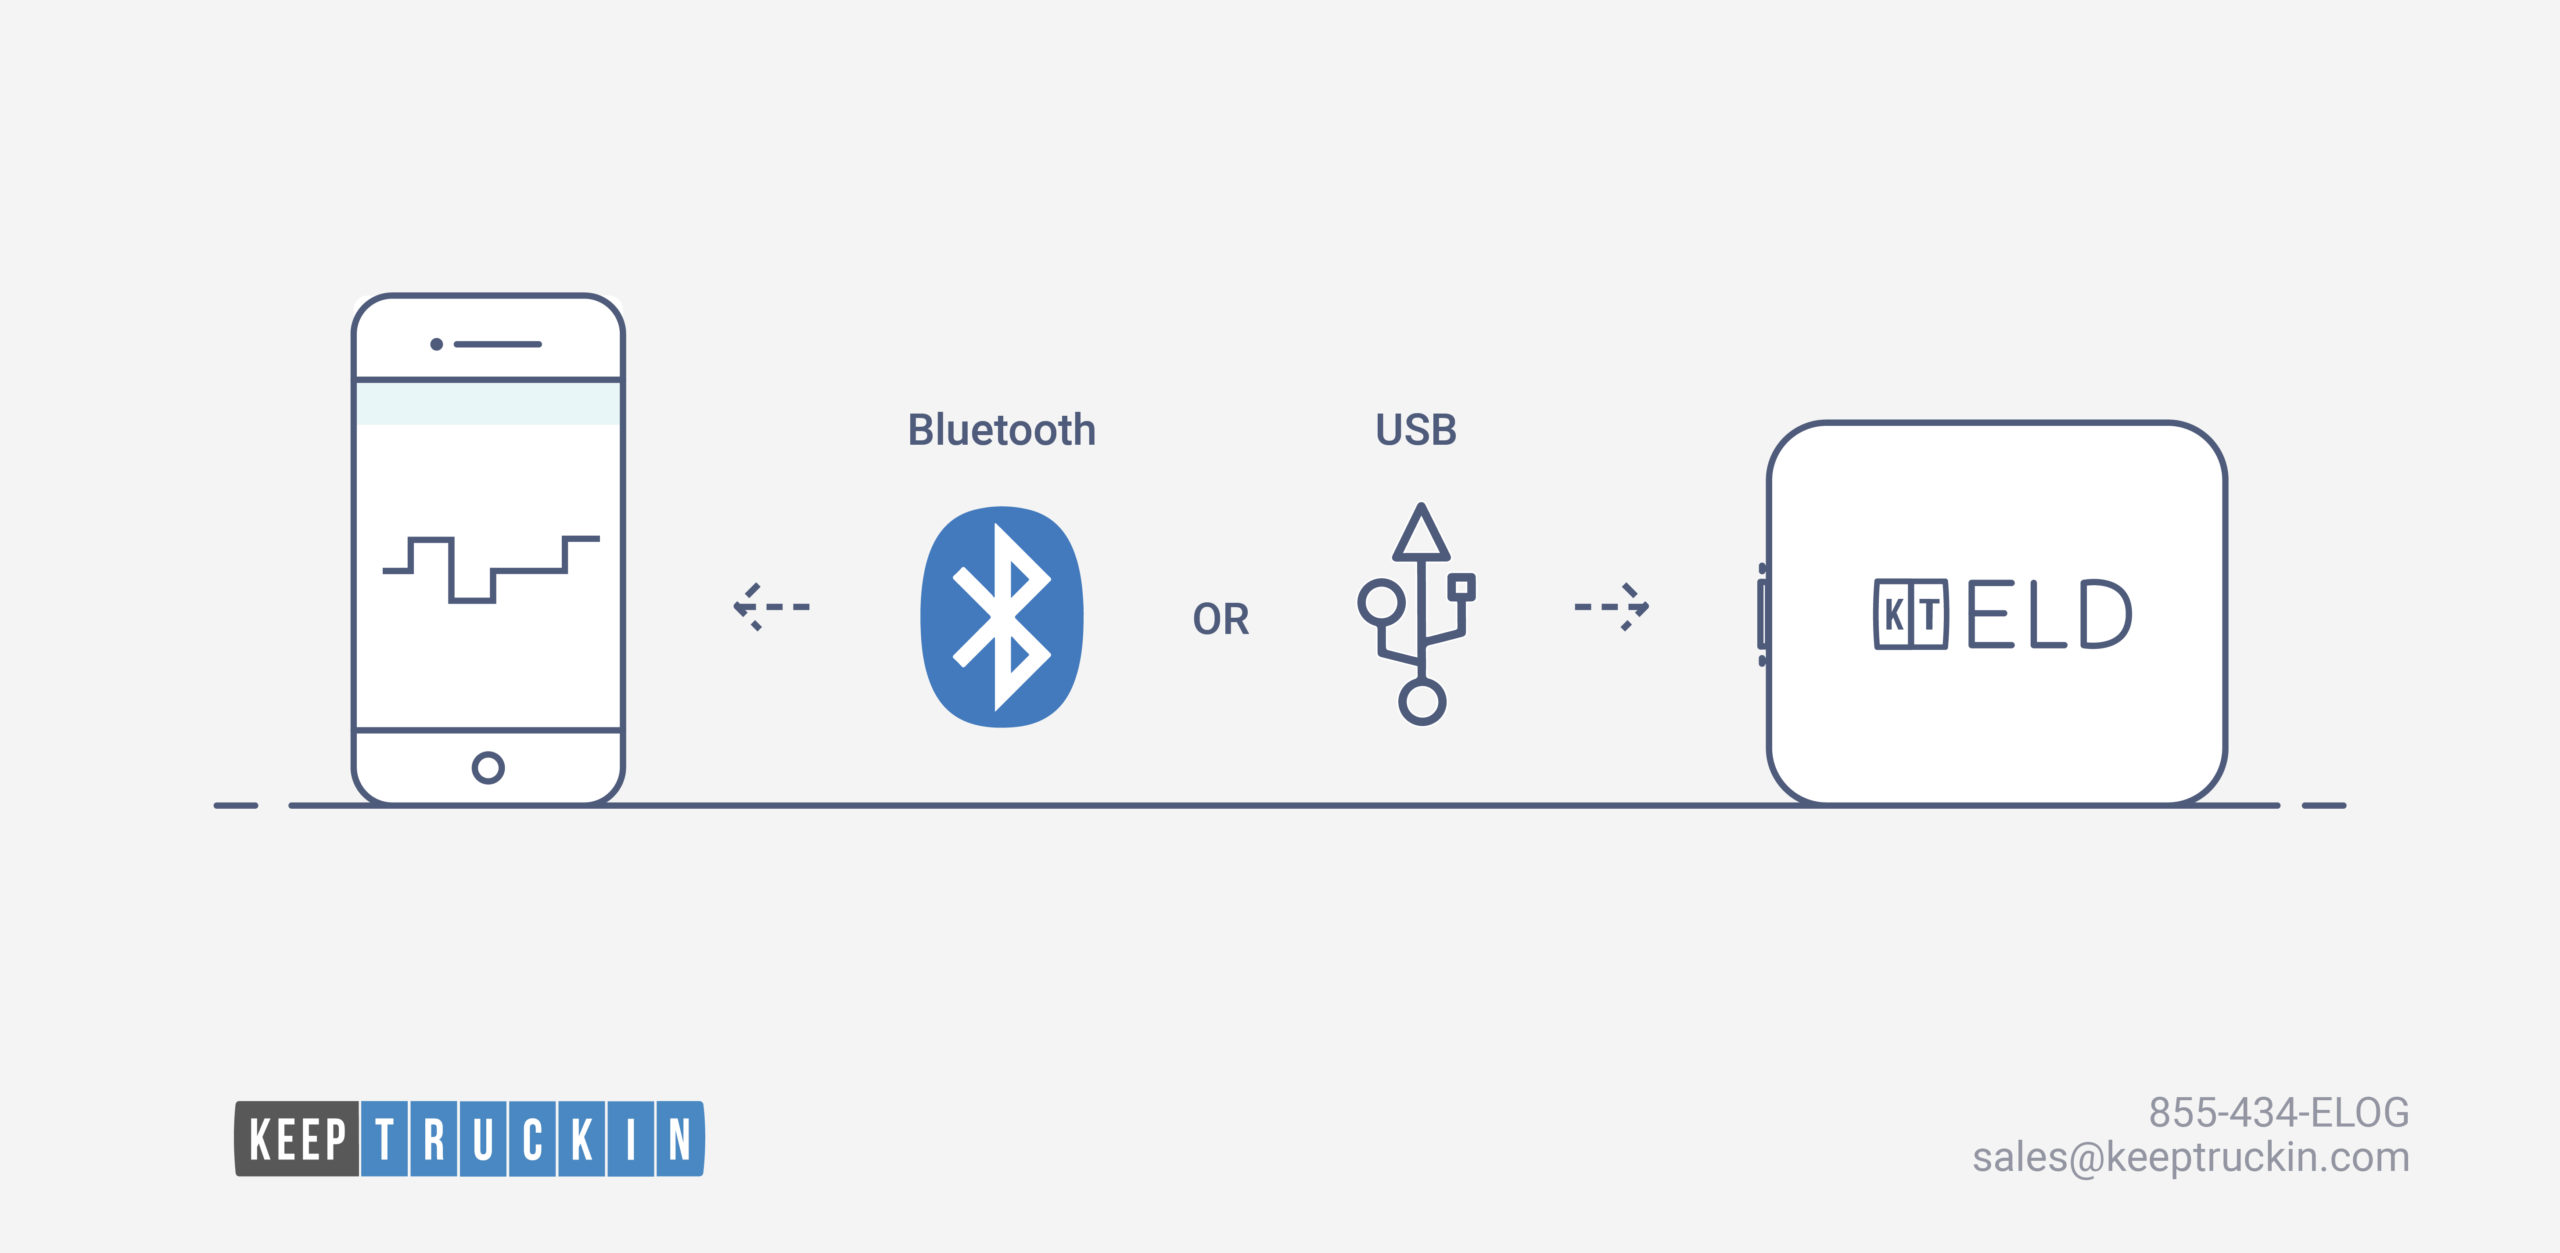 KeepTruckin Adds USB Connectivity to Help You Stay Compliant